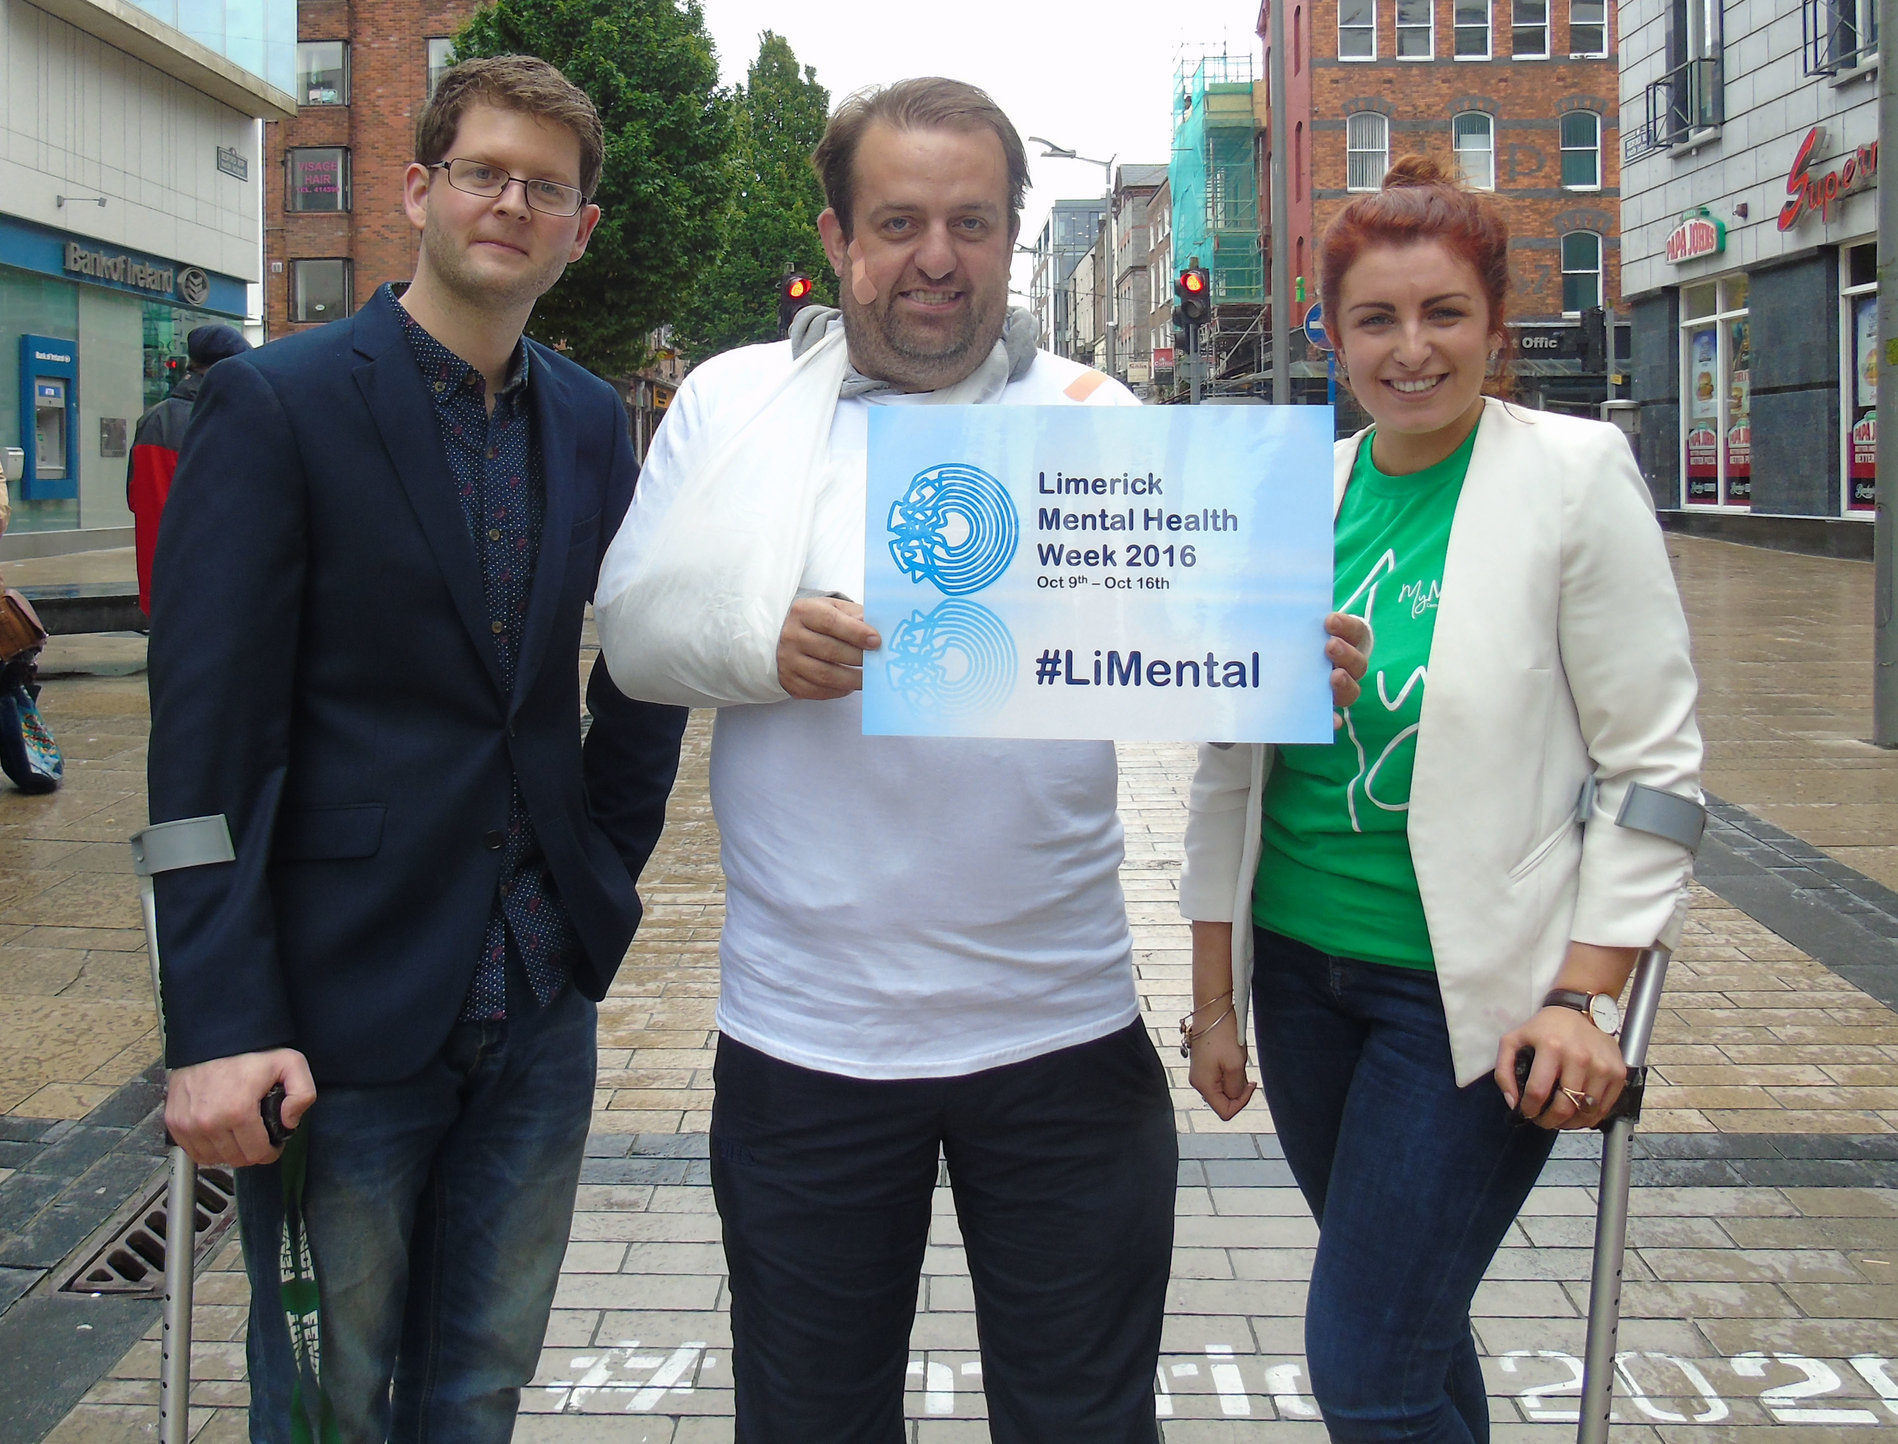 Limerick Mental Health Awareness Week 2016